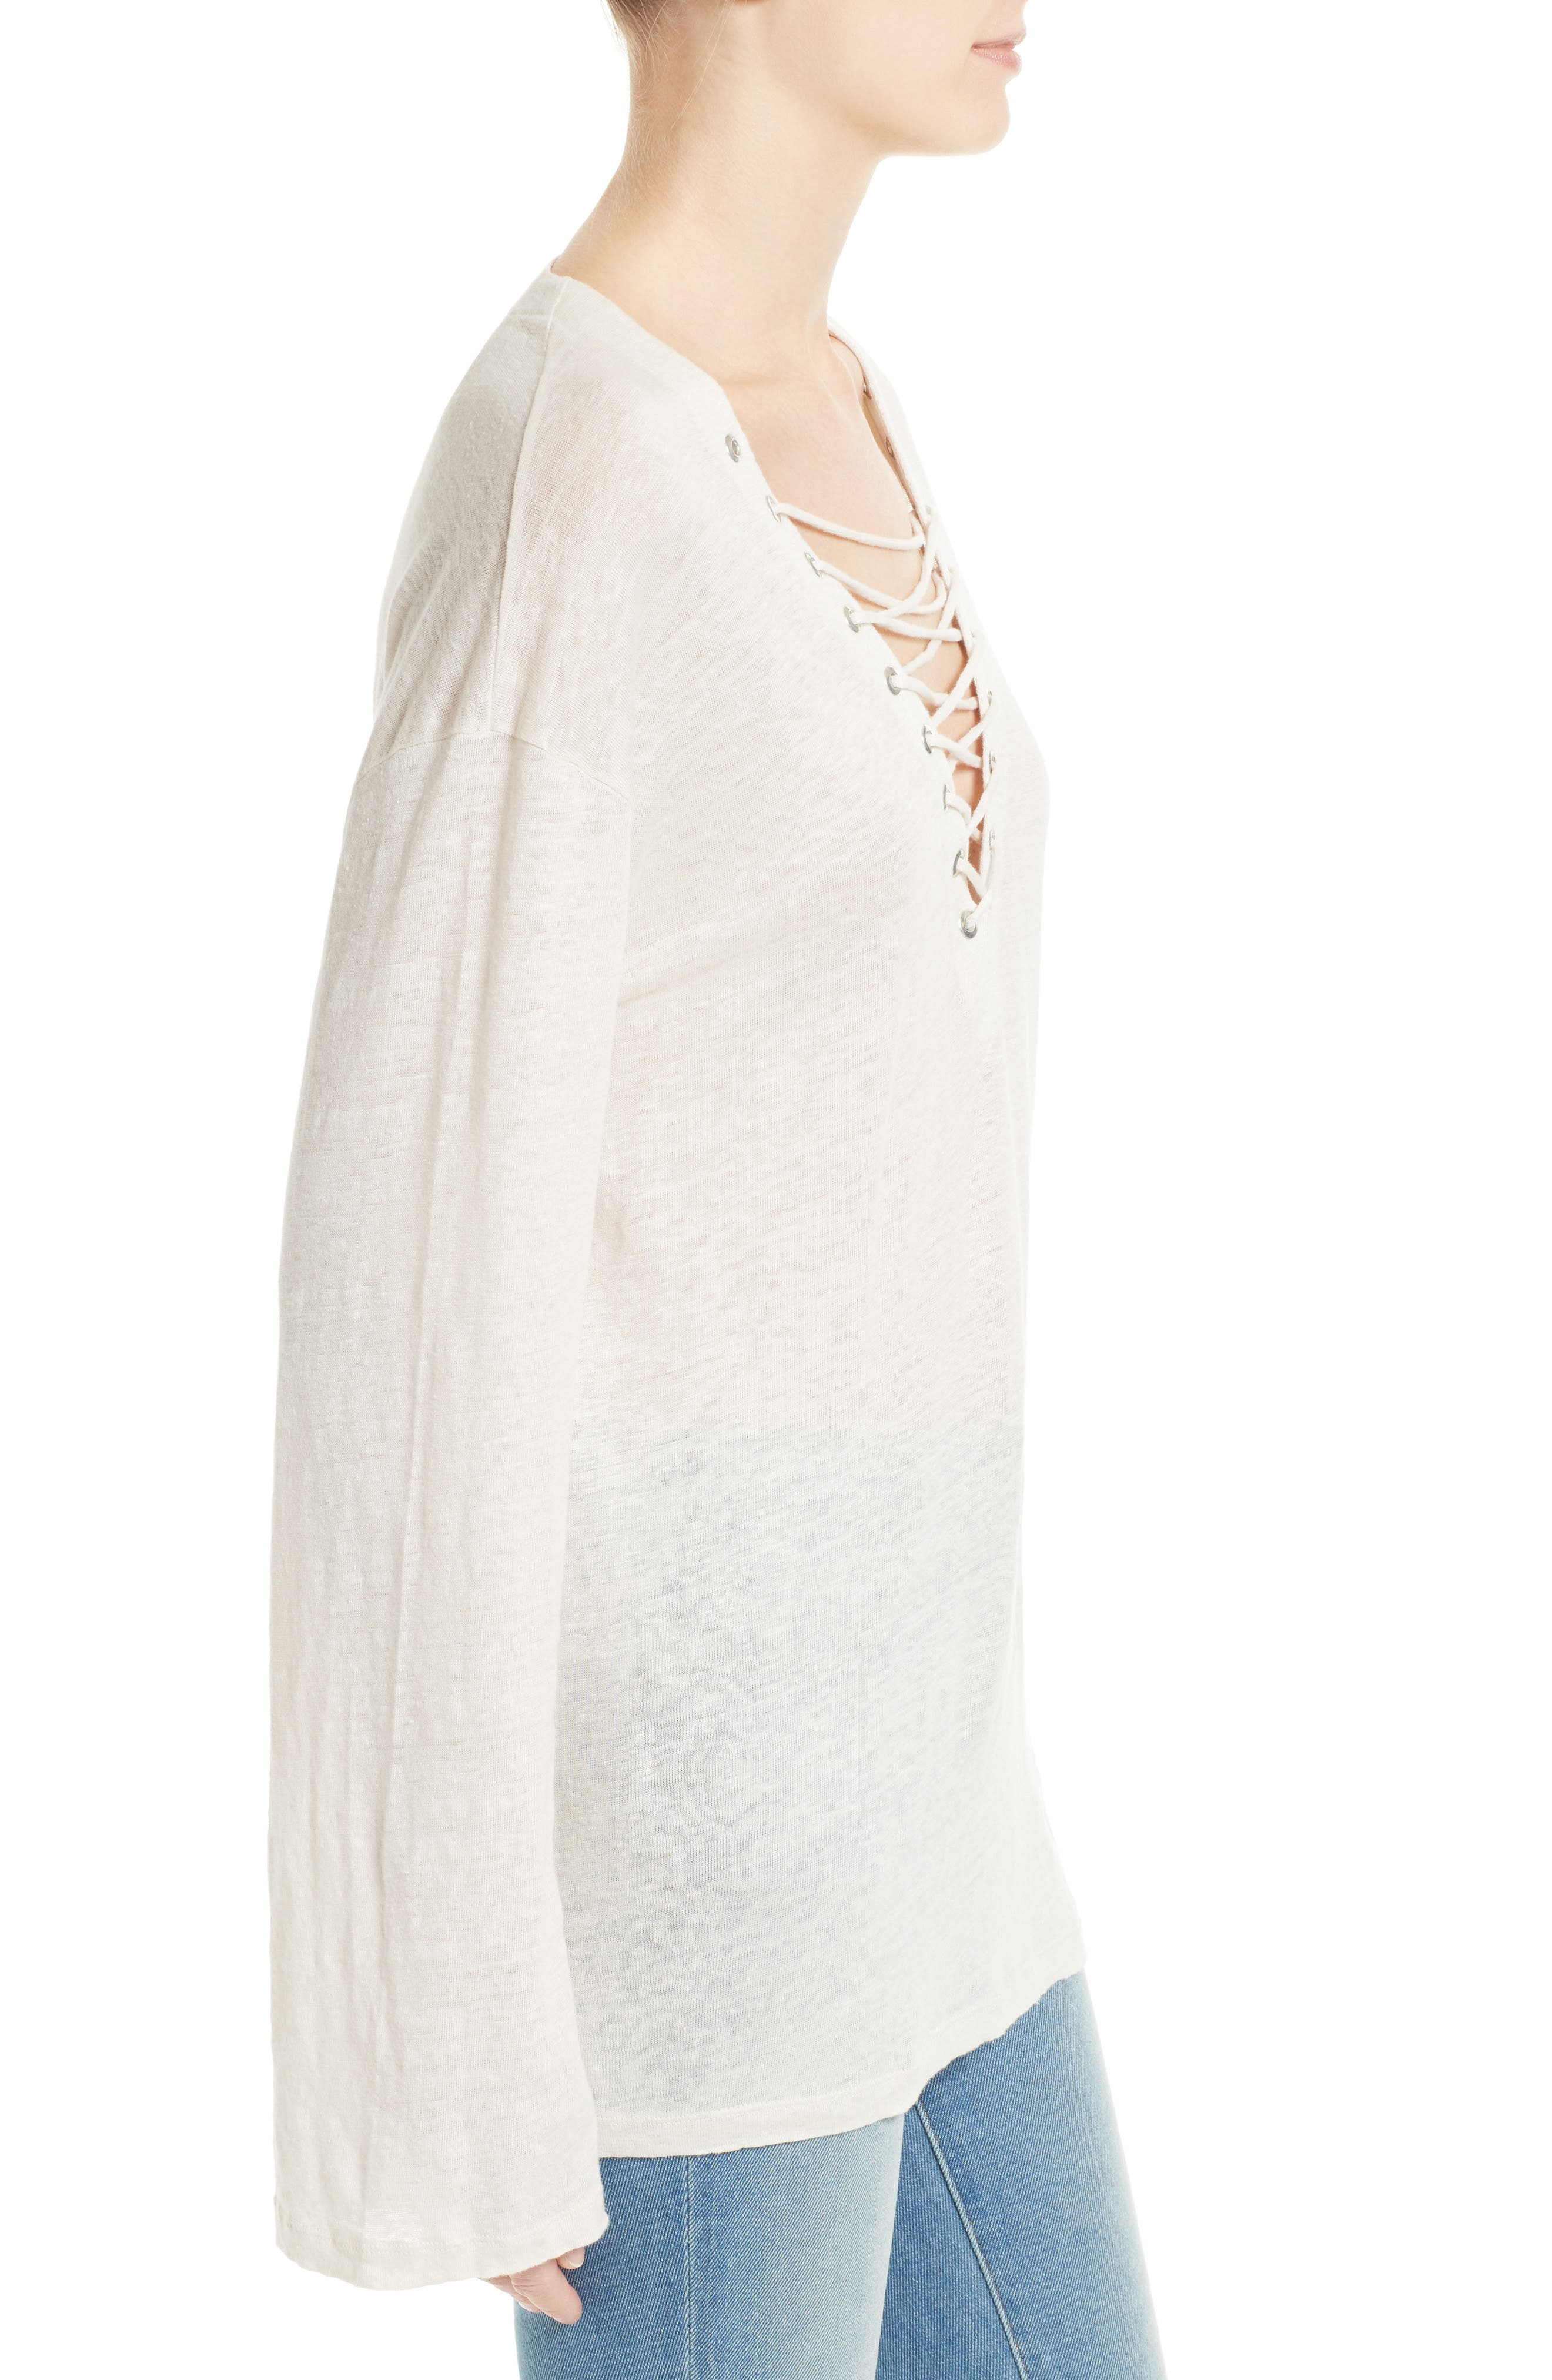 Alety Lace-Up Linen Top,                             Alternate thumbnail 3, color,                             Ivory